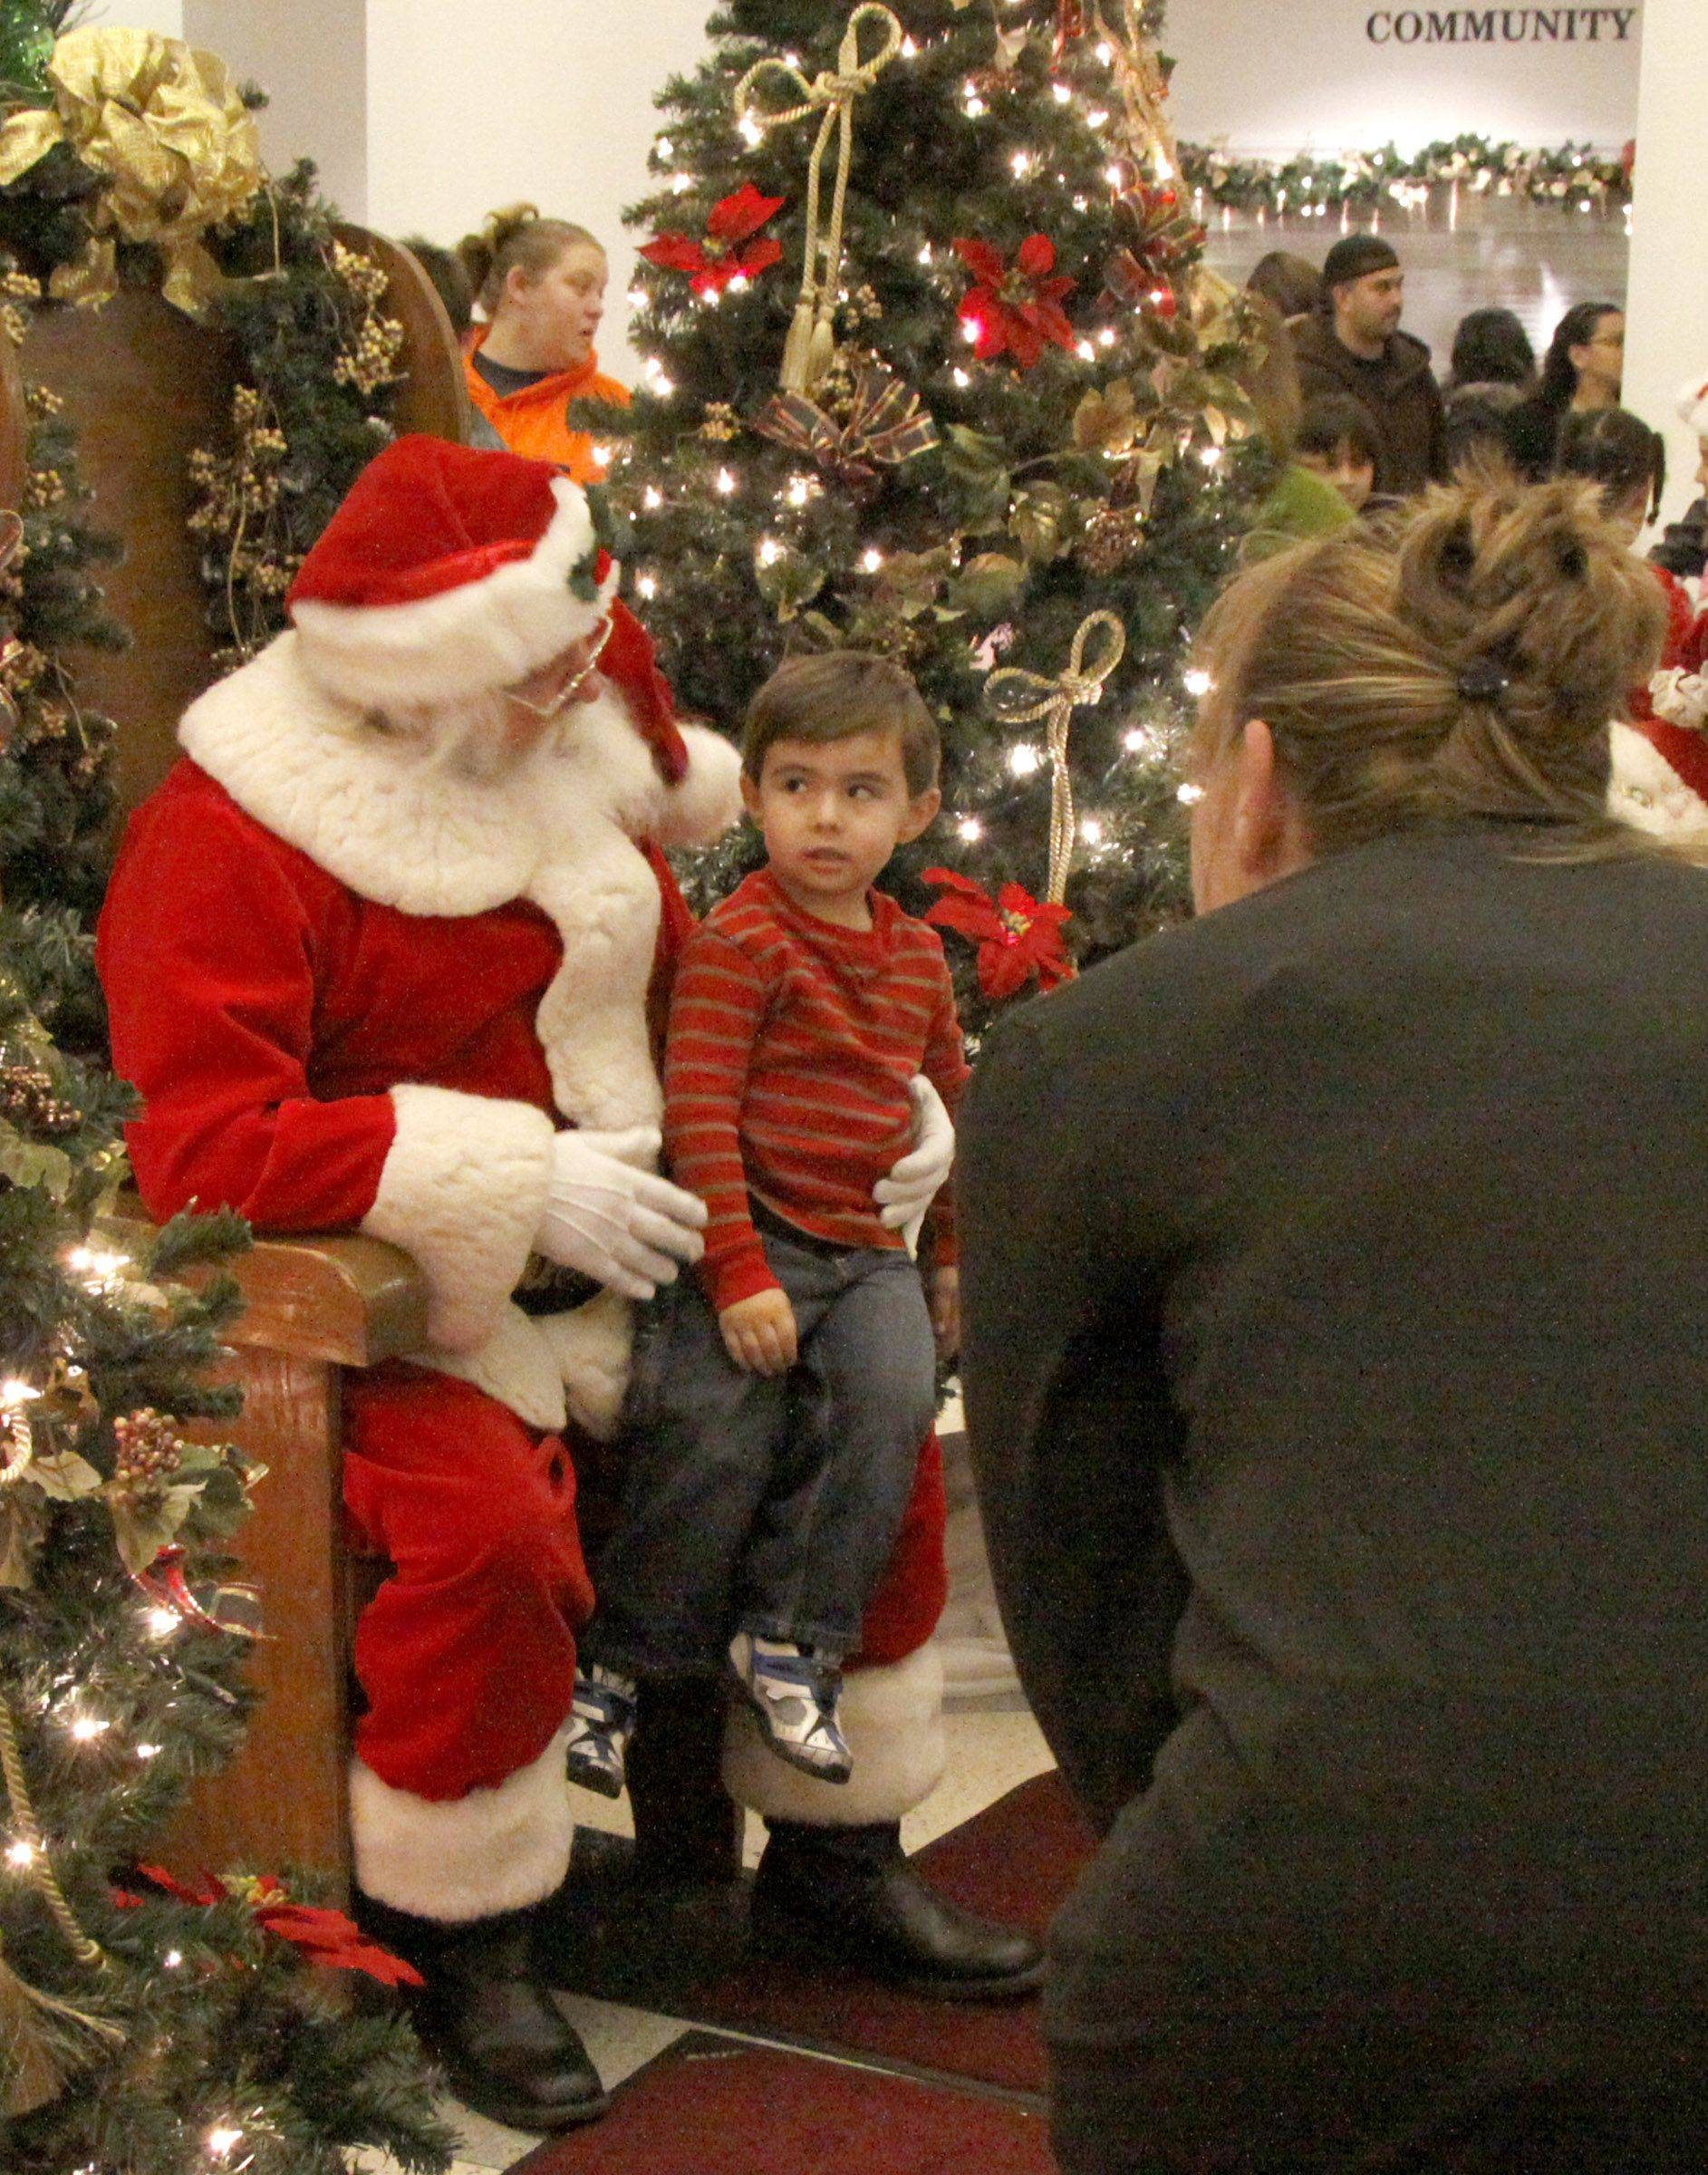 Rylan Rico, 4, of Addison sits on Santa's lap while his mother Jodi Krush tries to get him to smile for the camera. People came out to celebrate the season Friday at Addison's Village Hall. Pictures with Santa, ornament making and games were available for children of all ages.